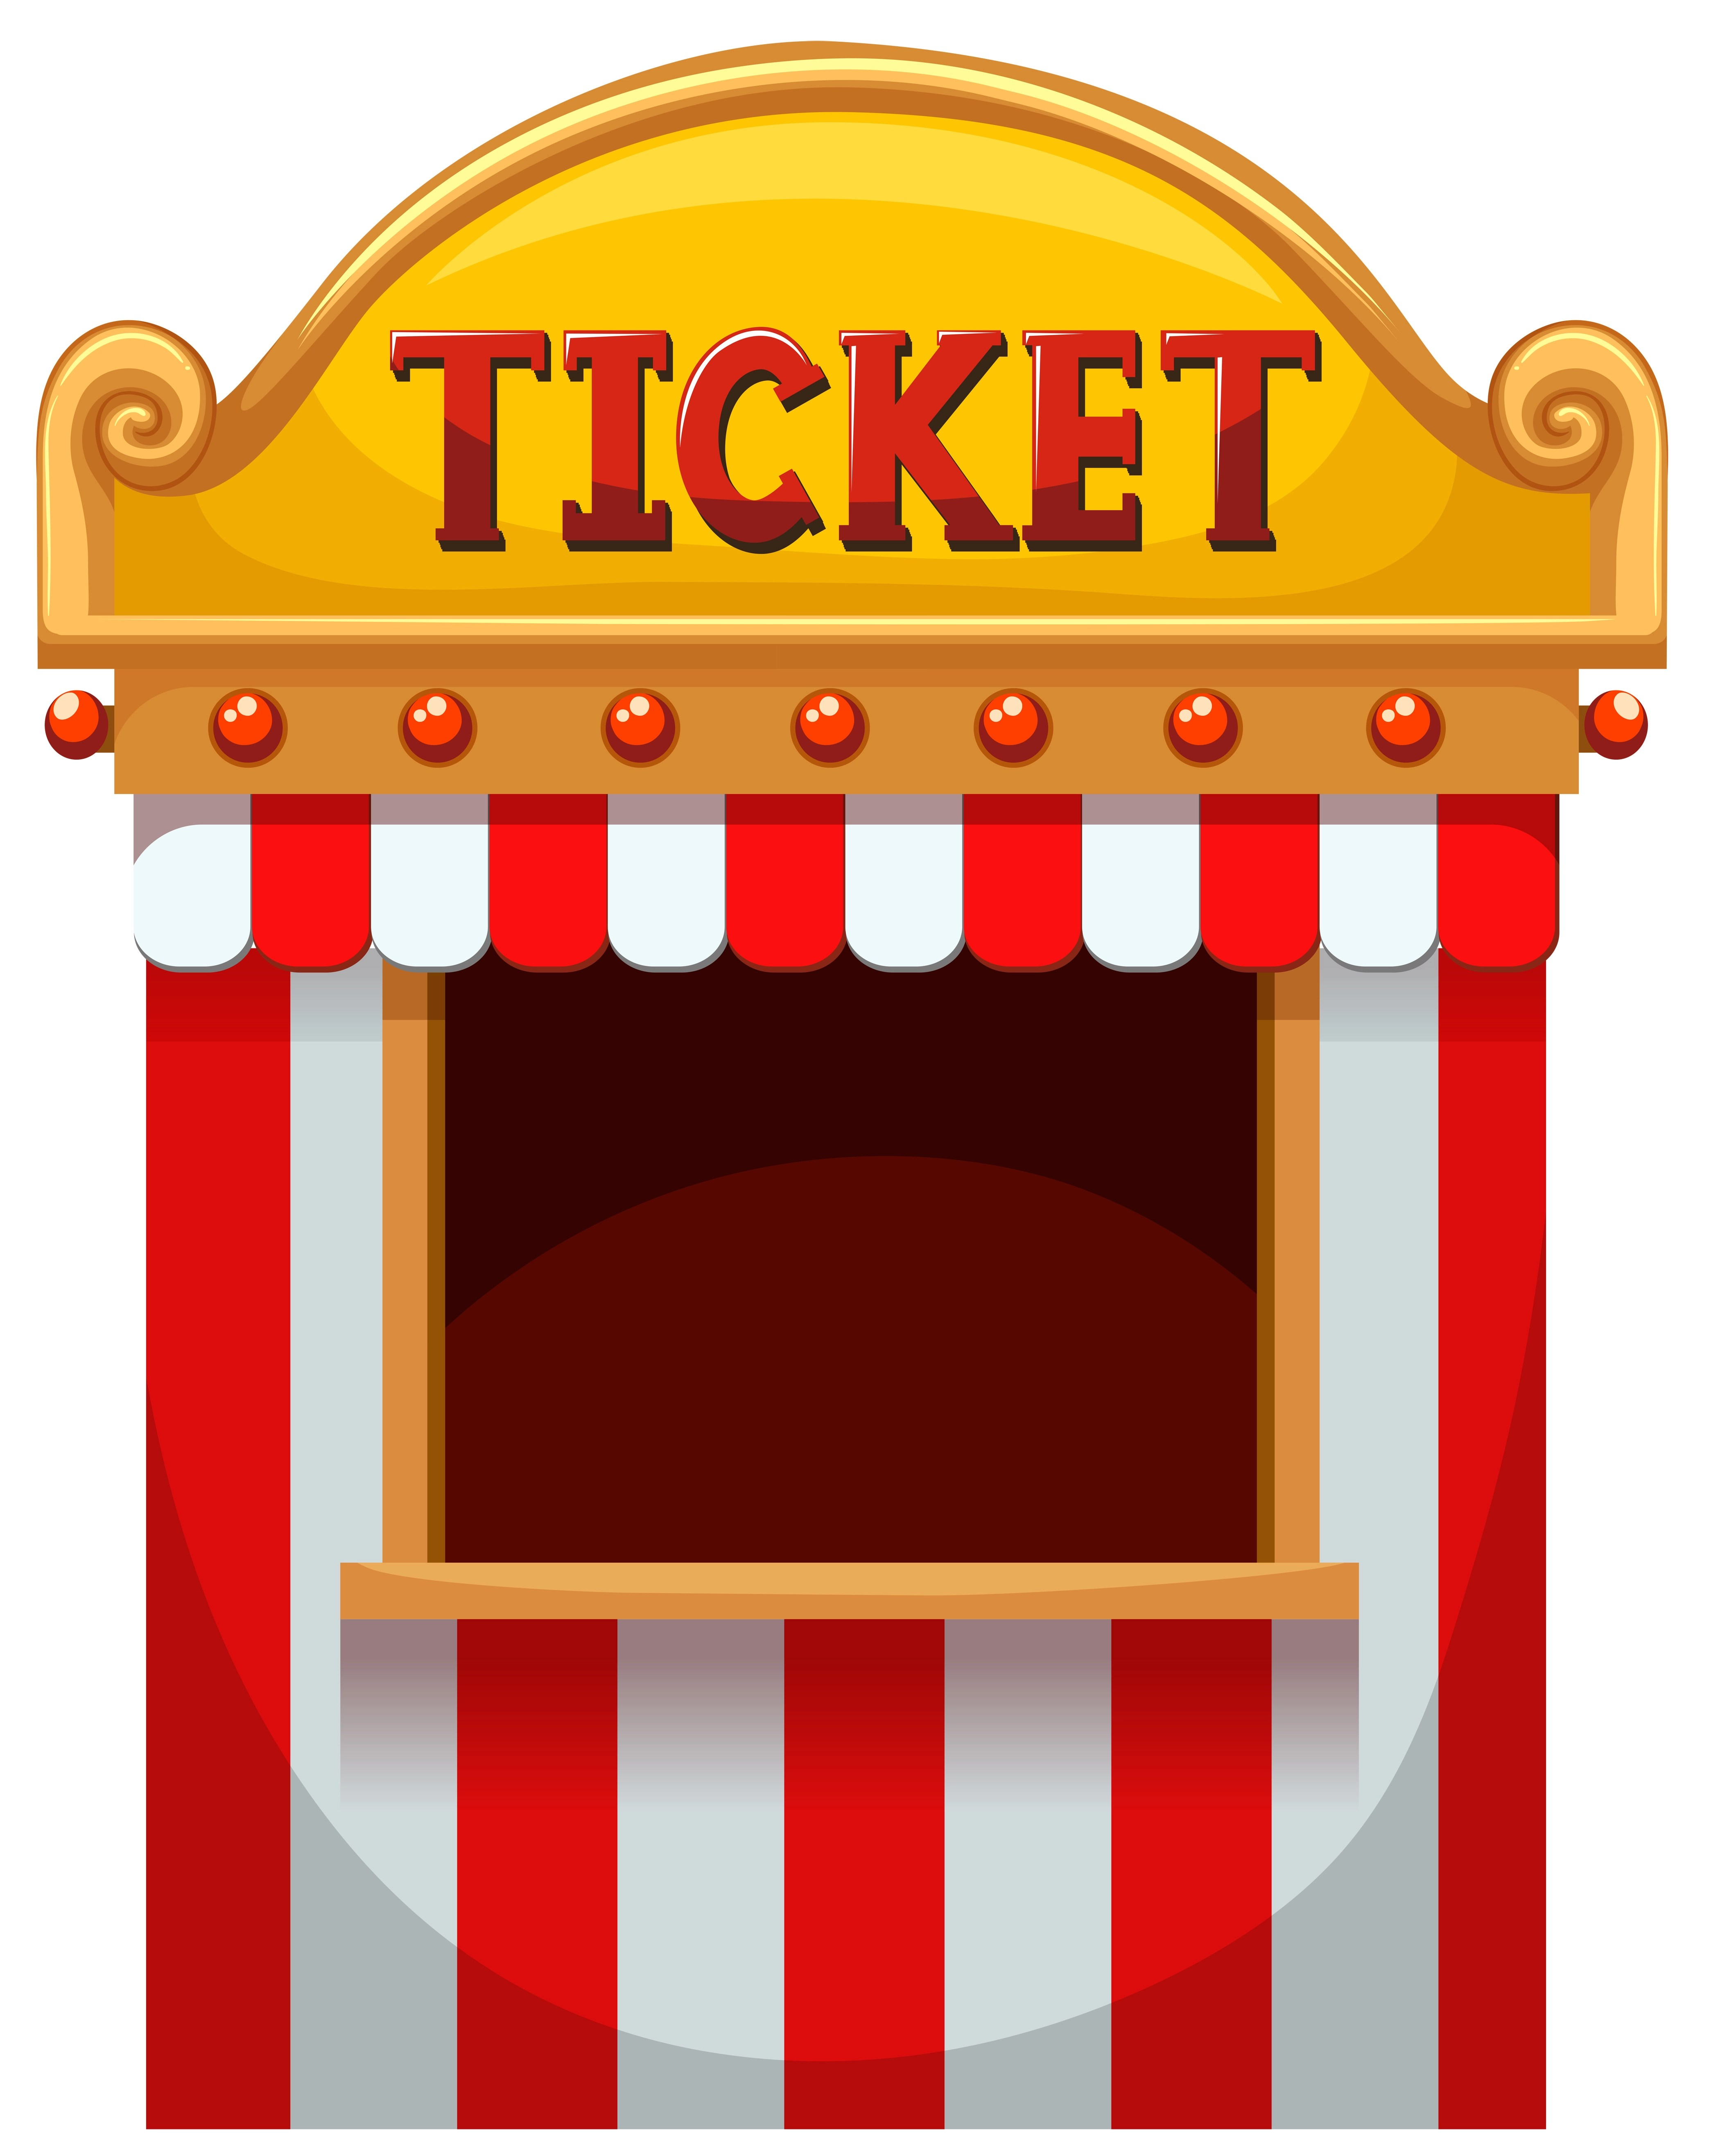 Booth Clipart : booth, clipart, Ticket, Booth, Carnival, 589351, Download, Vectors,, Clipart, Graphics, Vector